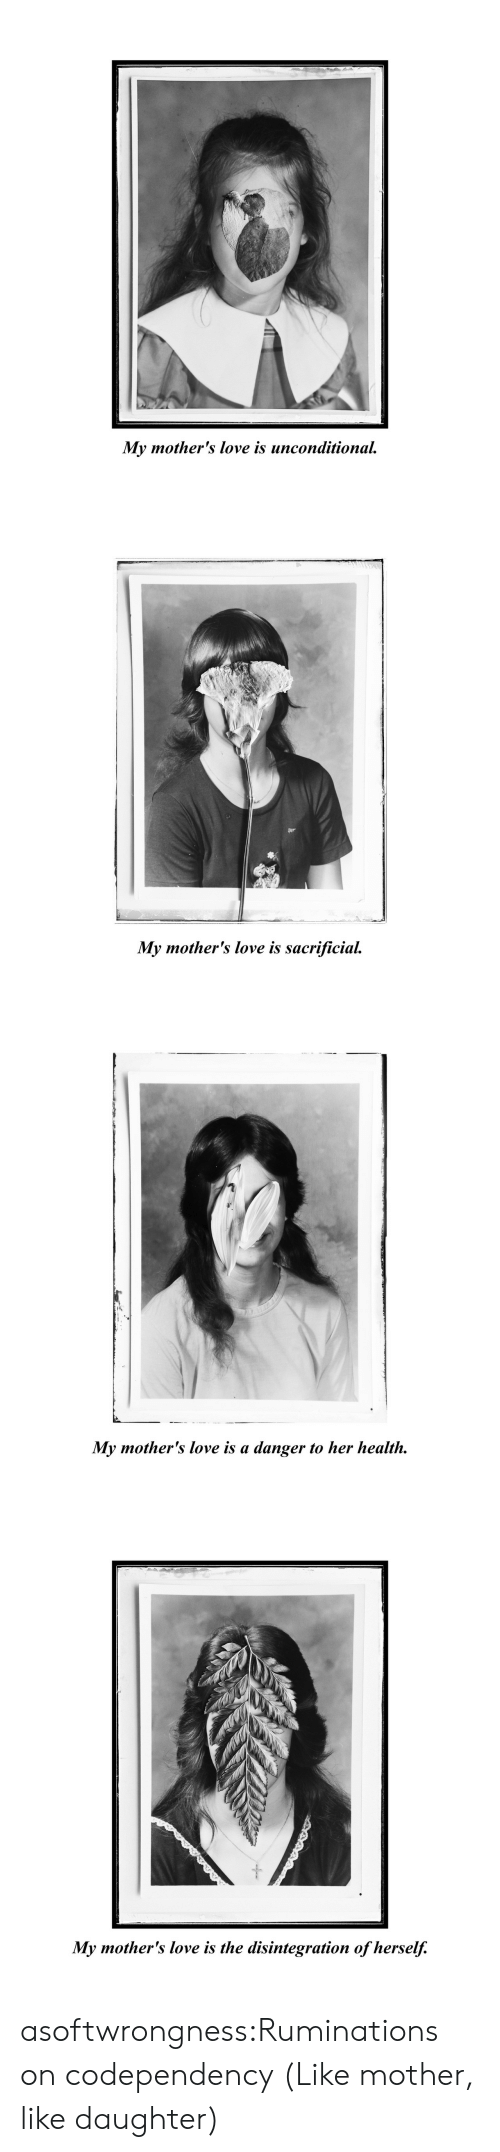 Love, Tumblr, and Blog: My mother's love is unconditional   My mother's love is sacrificial   My mother's love is a danger to her health   My mother's love is the disintegration of herself. asoftwrongness:Ruminations on codependency (Like mother, like daughter)